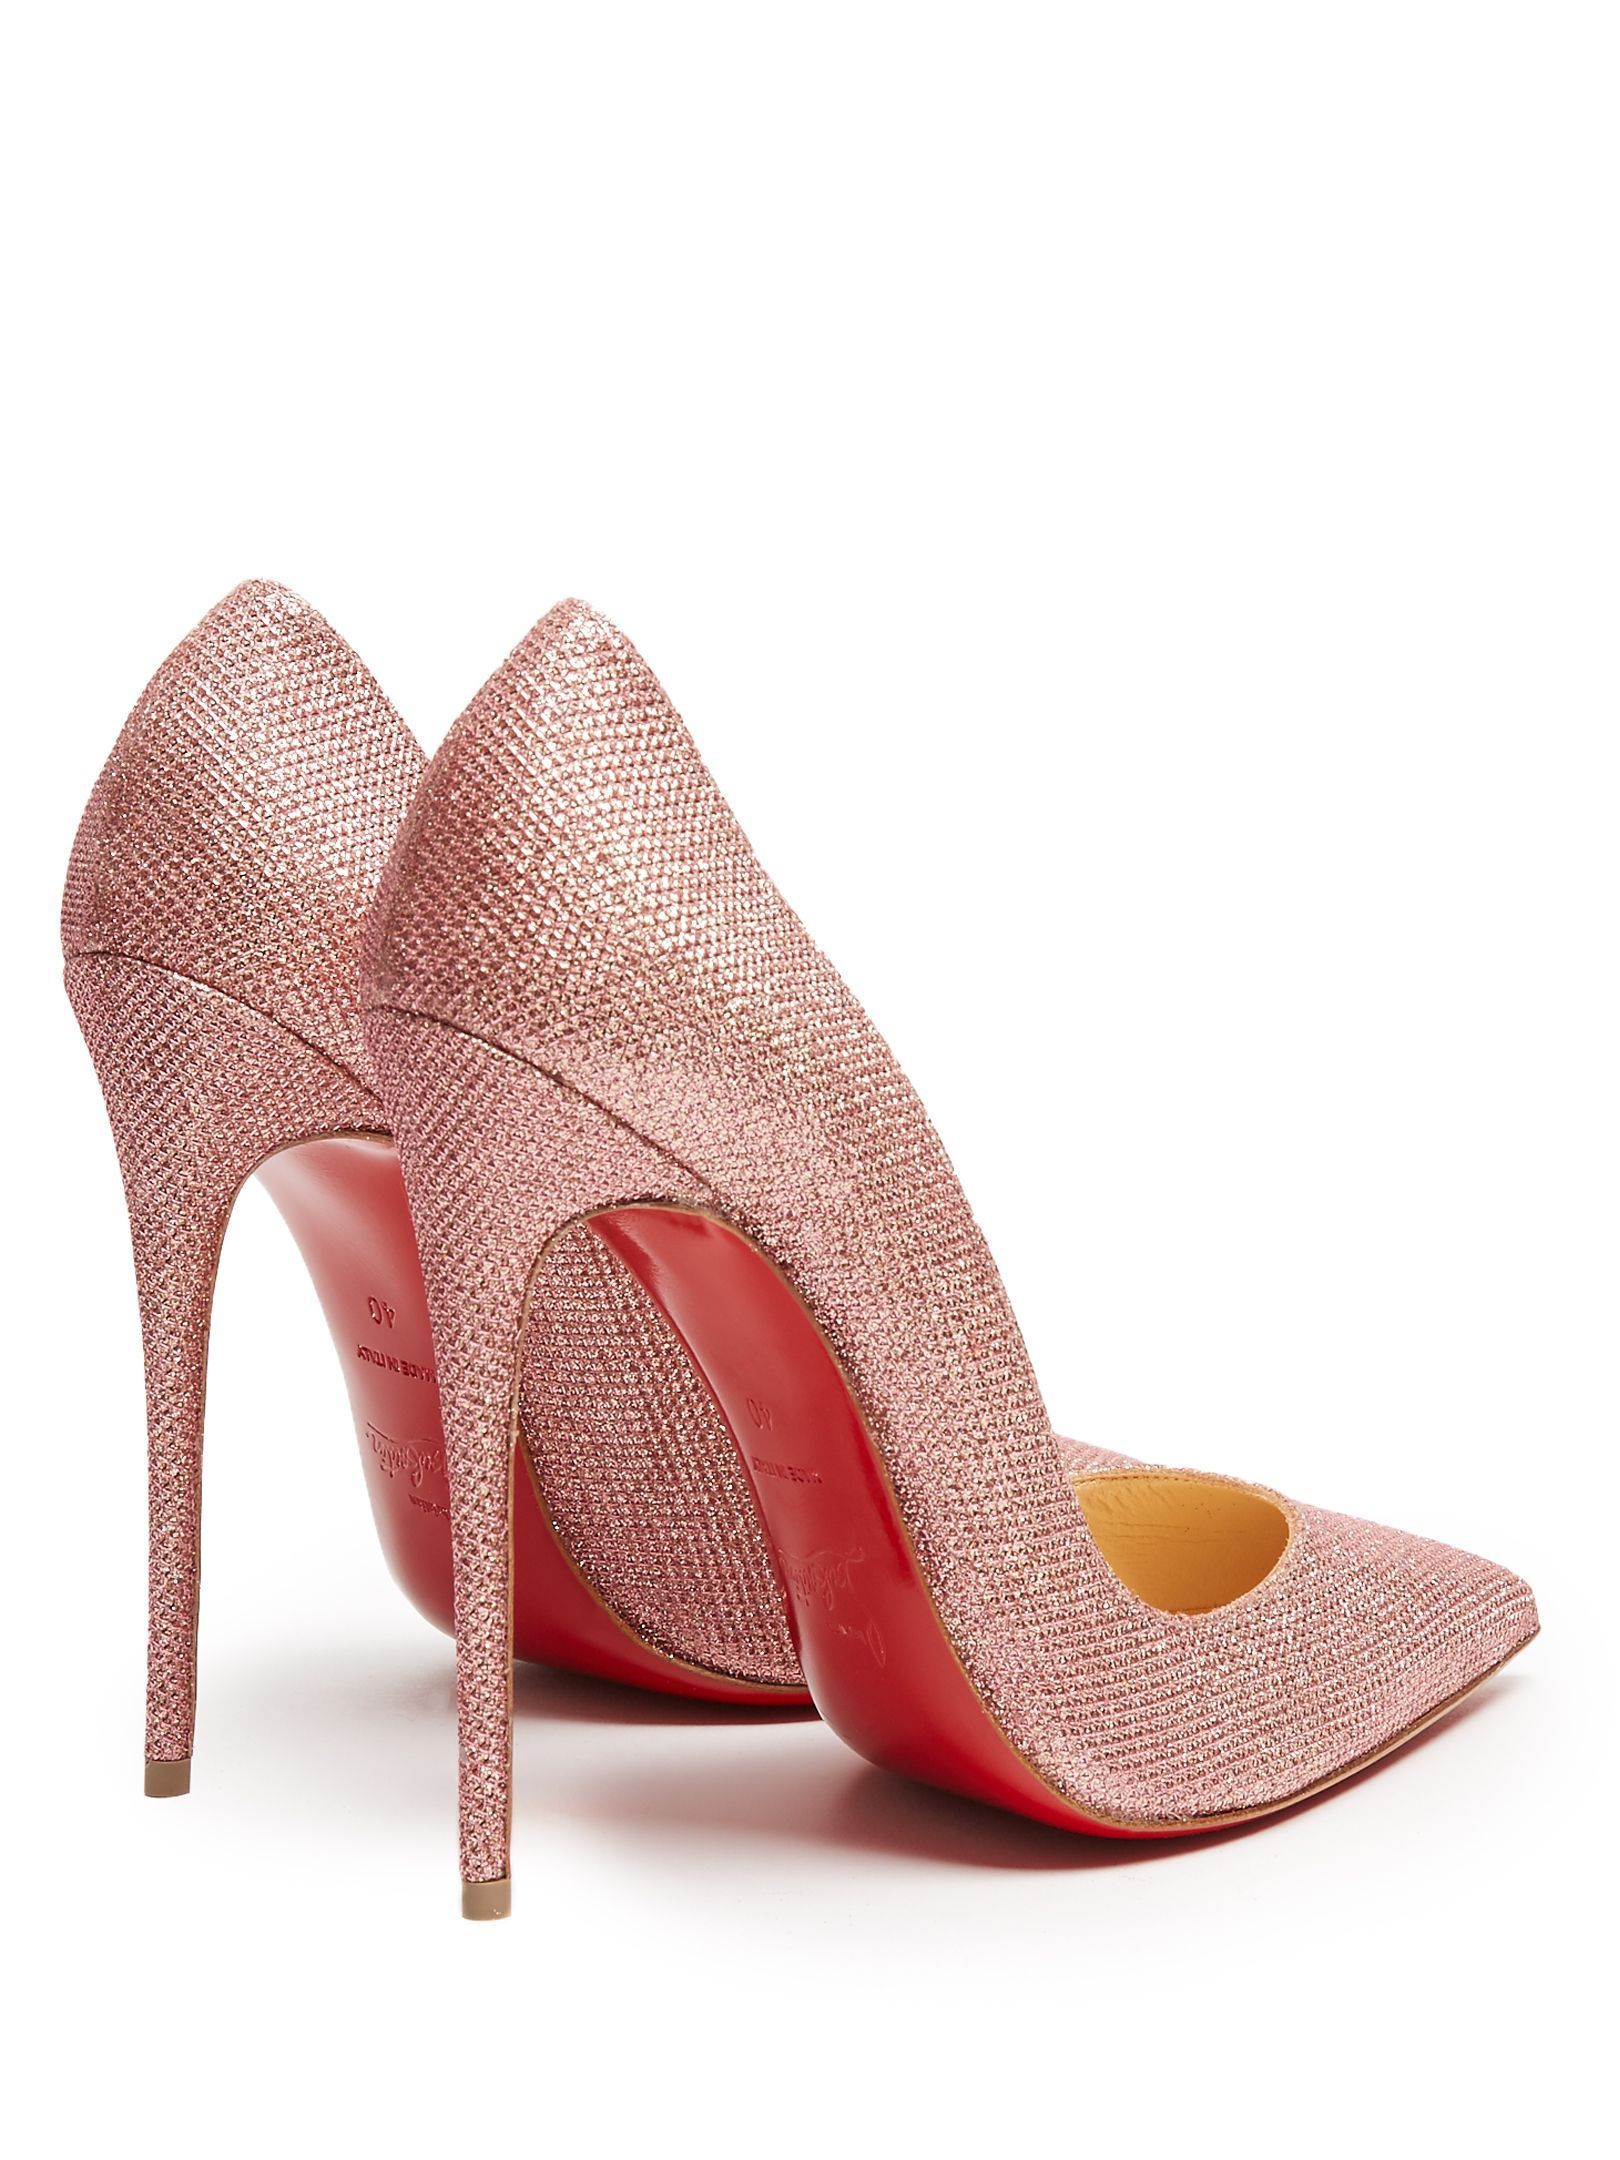 59c047136bcc CHRISTIAN LOUBOUTIN So Kate 120mm glitter pumps  christianlouboutinsokate   GlitterFashion